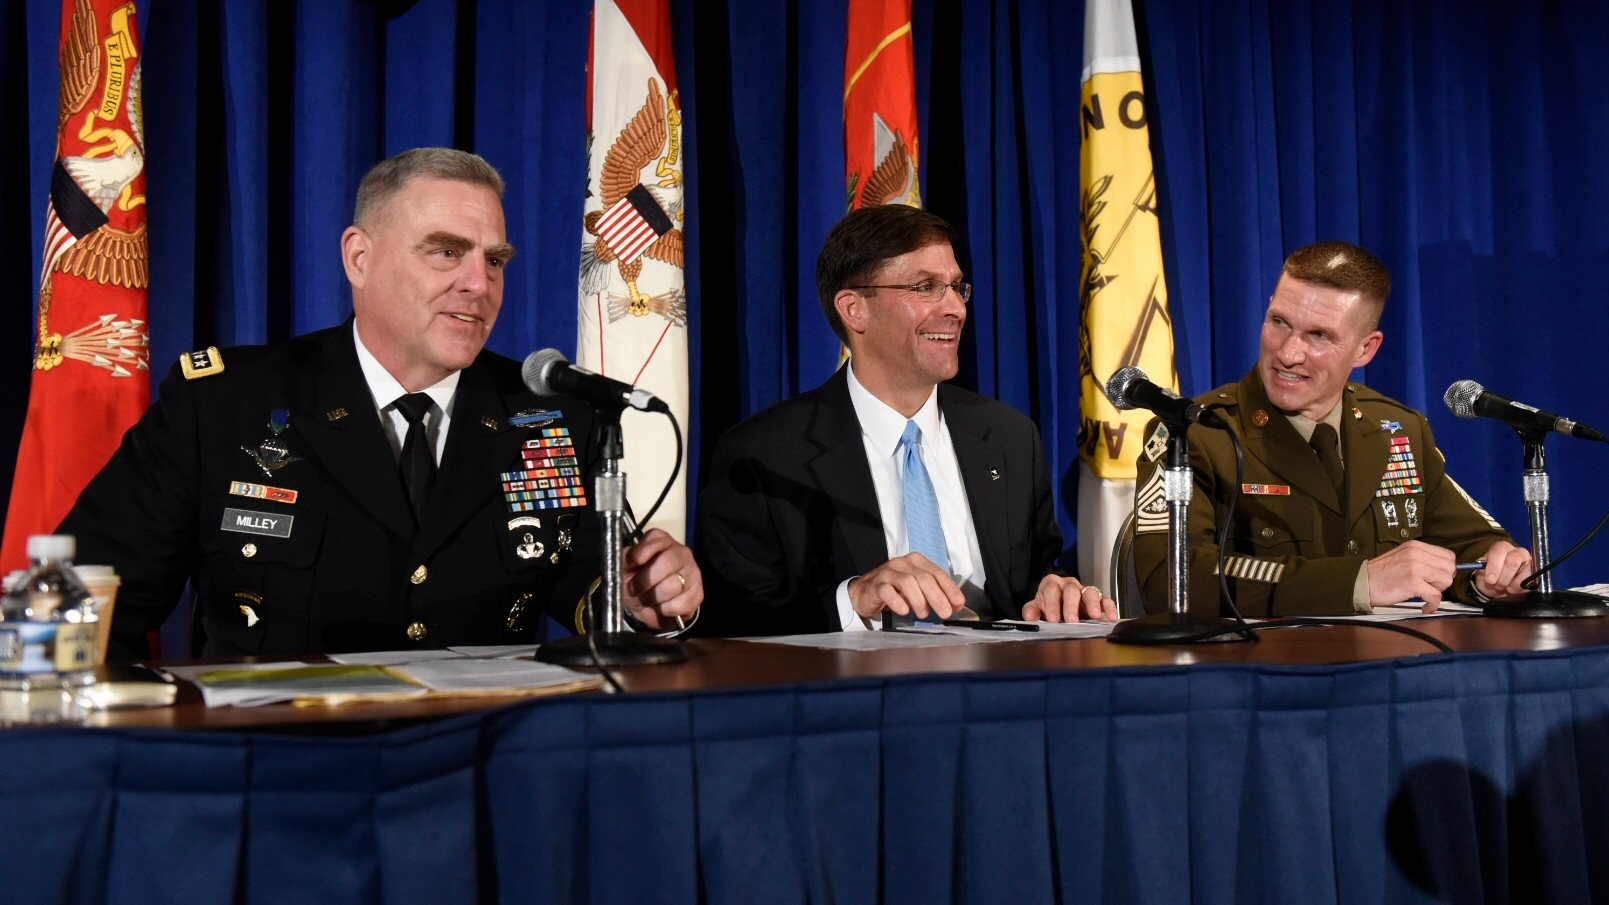 Army Chief of Staff Gen. Mark Milley, left, with Army Secretary Mark Esper, Sgt. Major of the Army Dan Dailey, during a town hall with military families during the 2018 AUSA annual meeting and exposition in Washington, DC. (Stephen Barrett/Special to Defense News & Army Times)